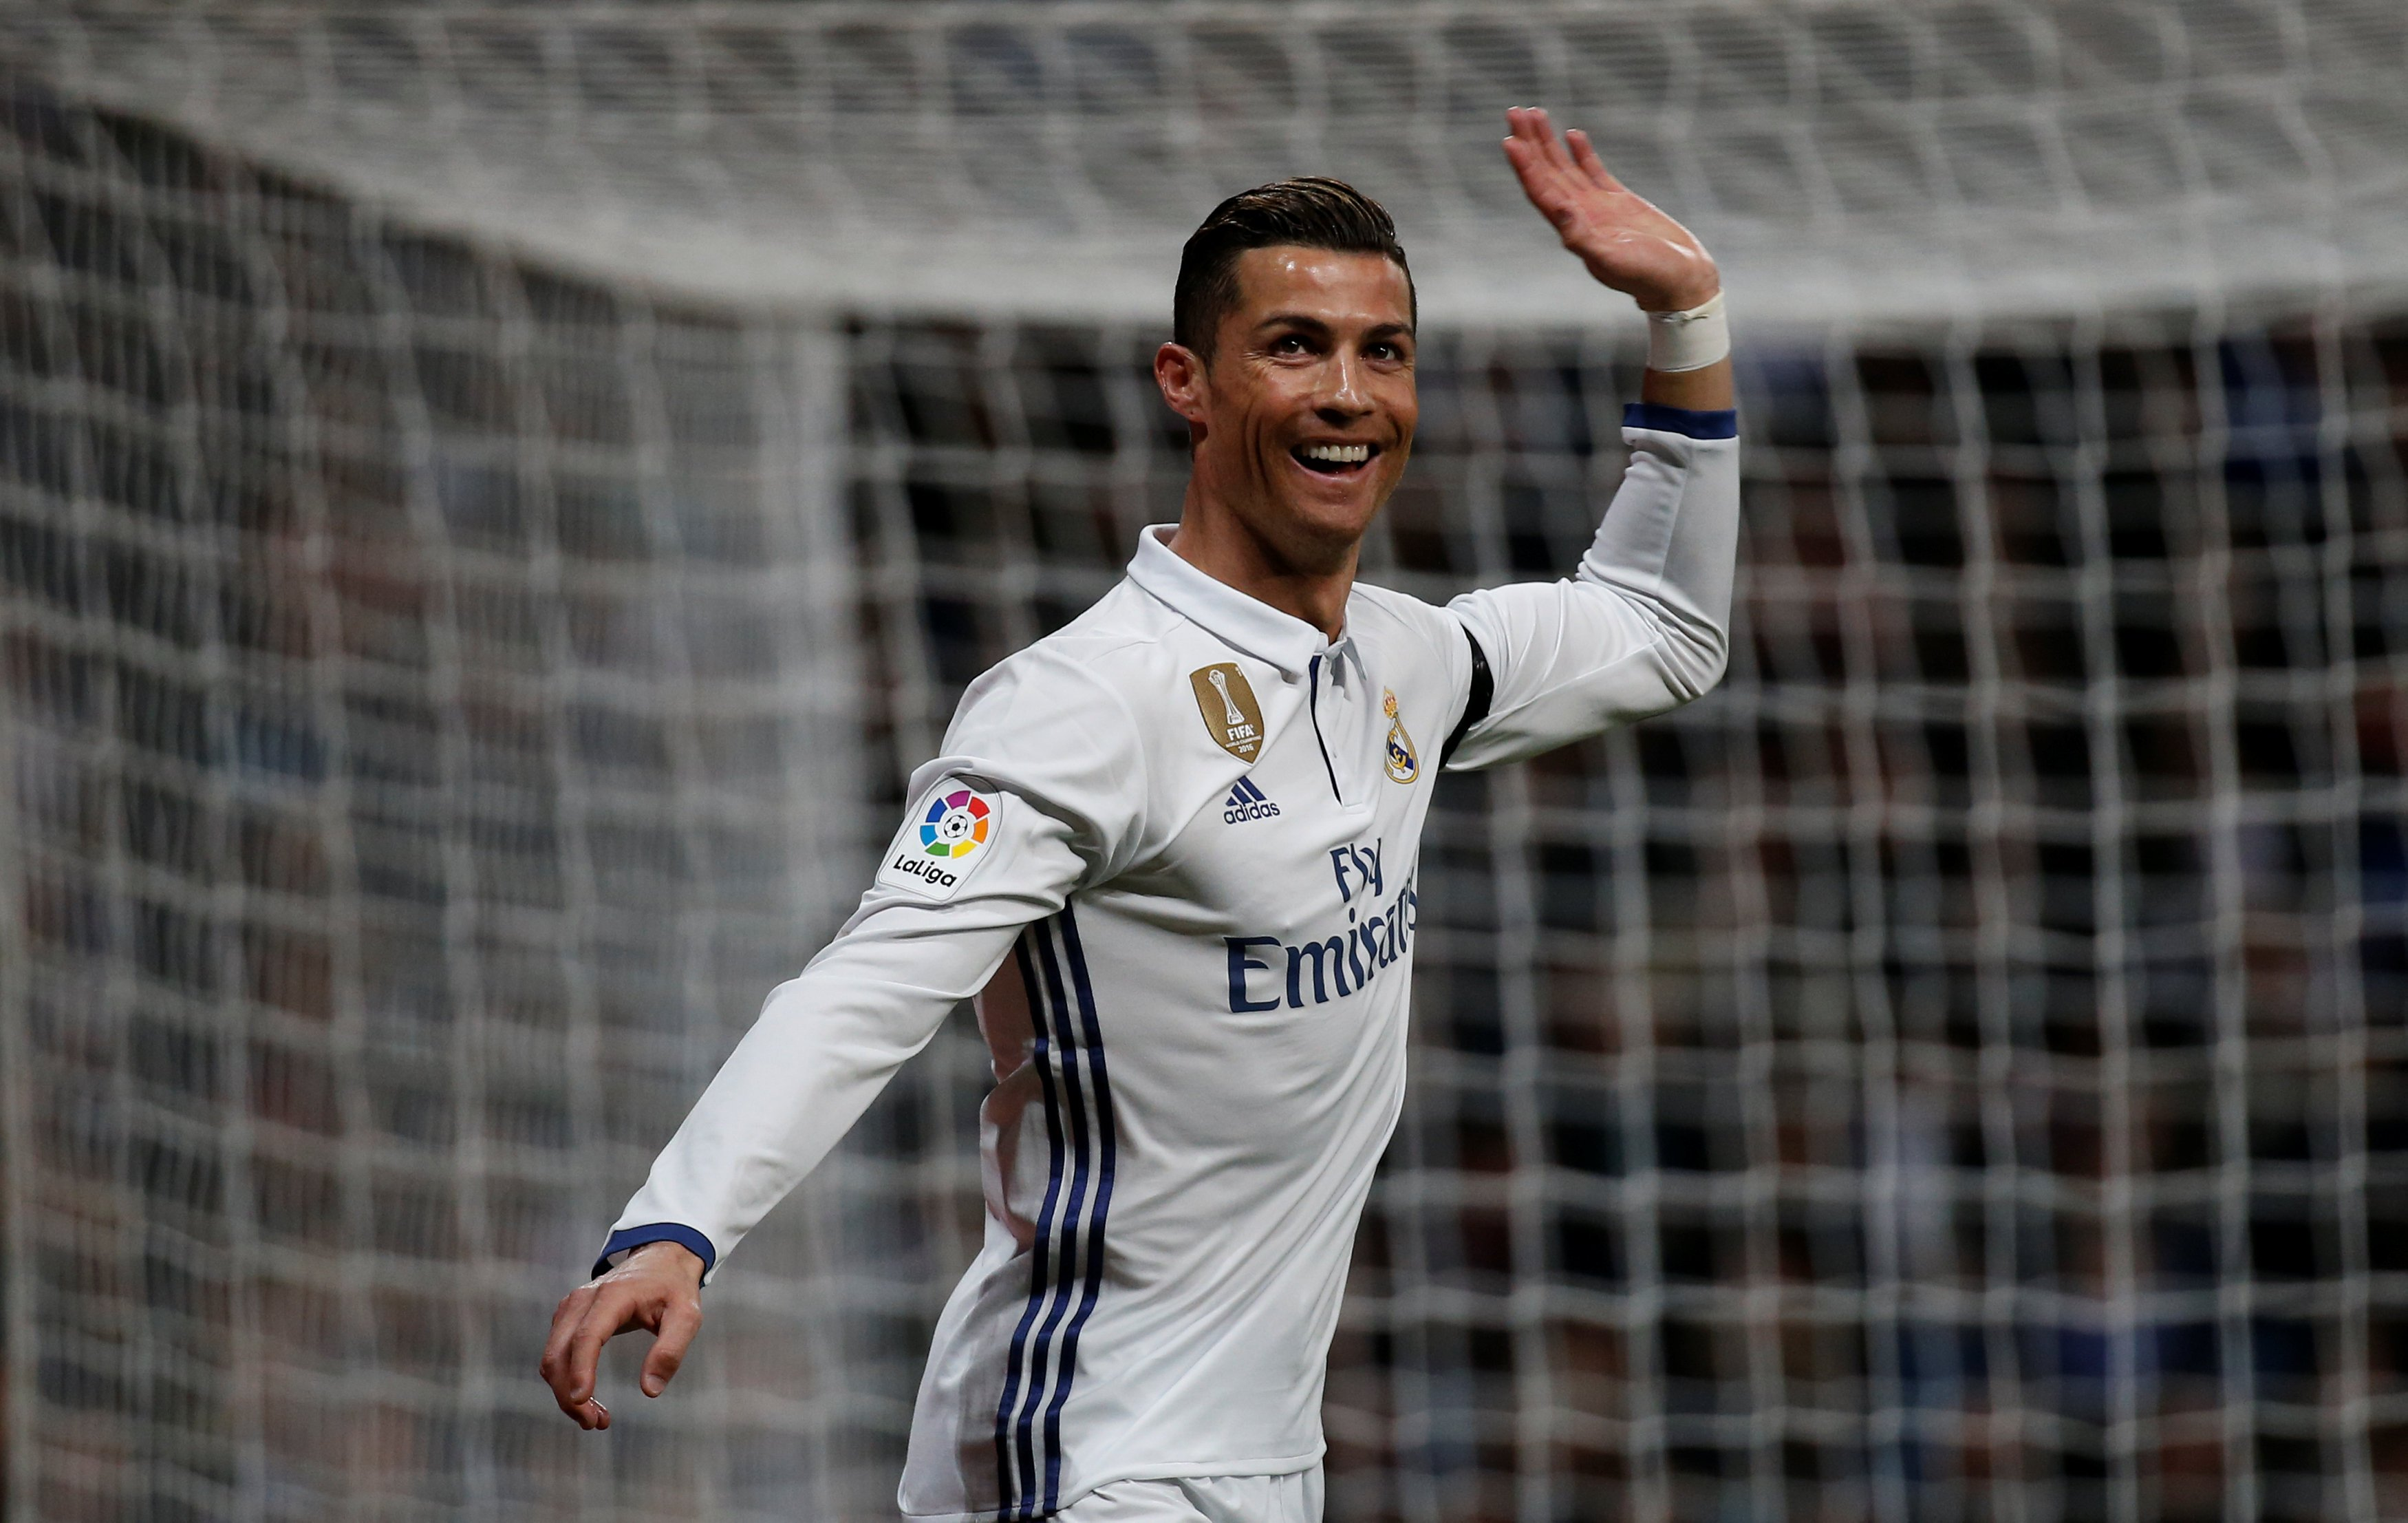 Madrid and Ronaldo have found their form at the right time but they are almost certainly out of the title race, with Barcelona already 14 points ahead. PHOTO: AFP